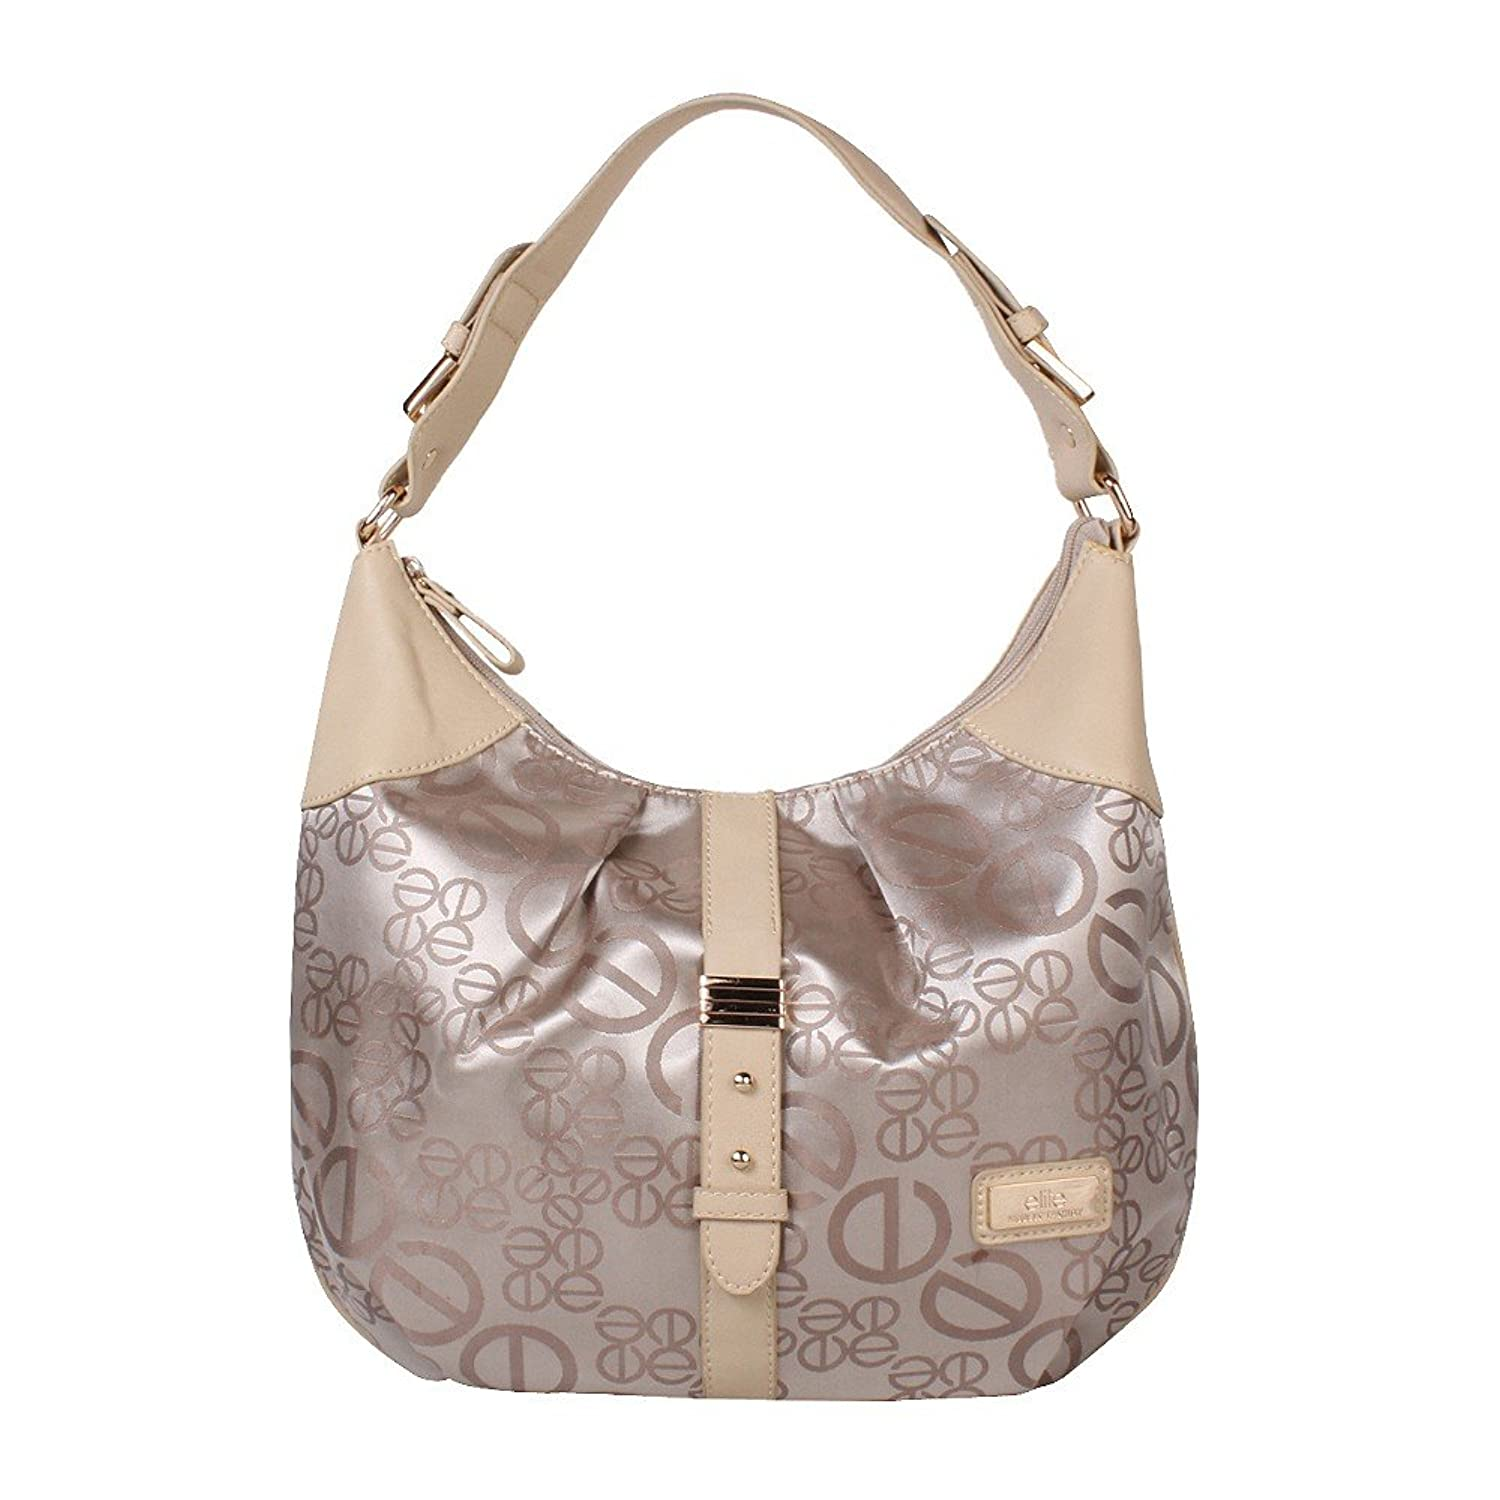 Elite Models Fashion- Damen Hobbo Bag - Farbauswahl